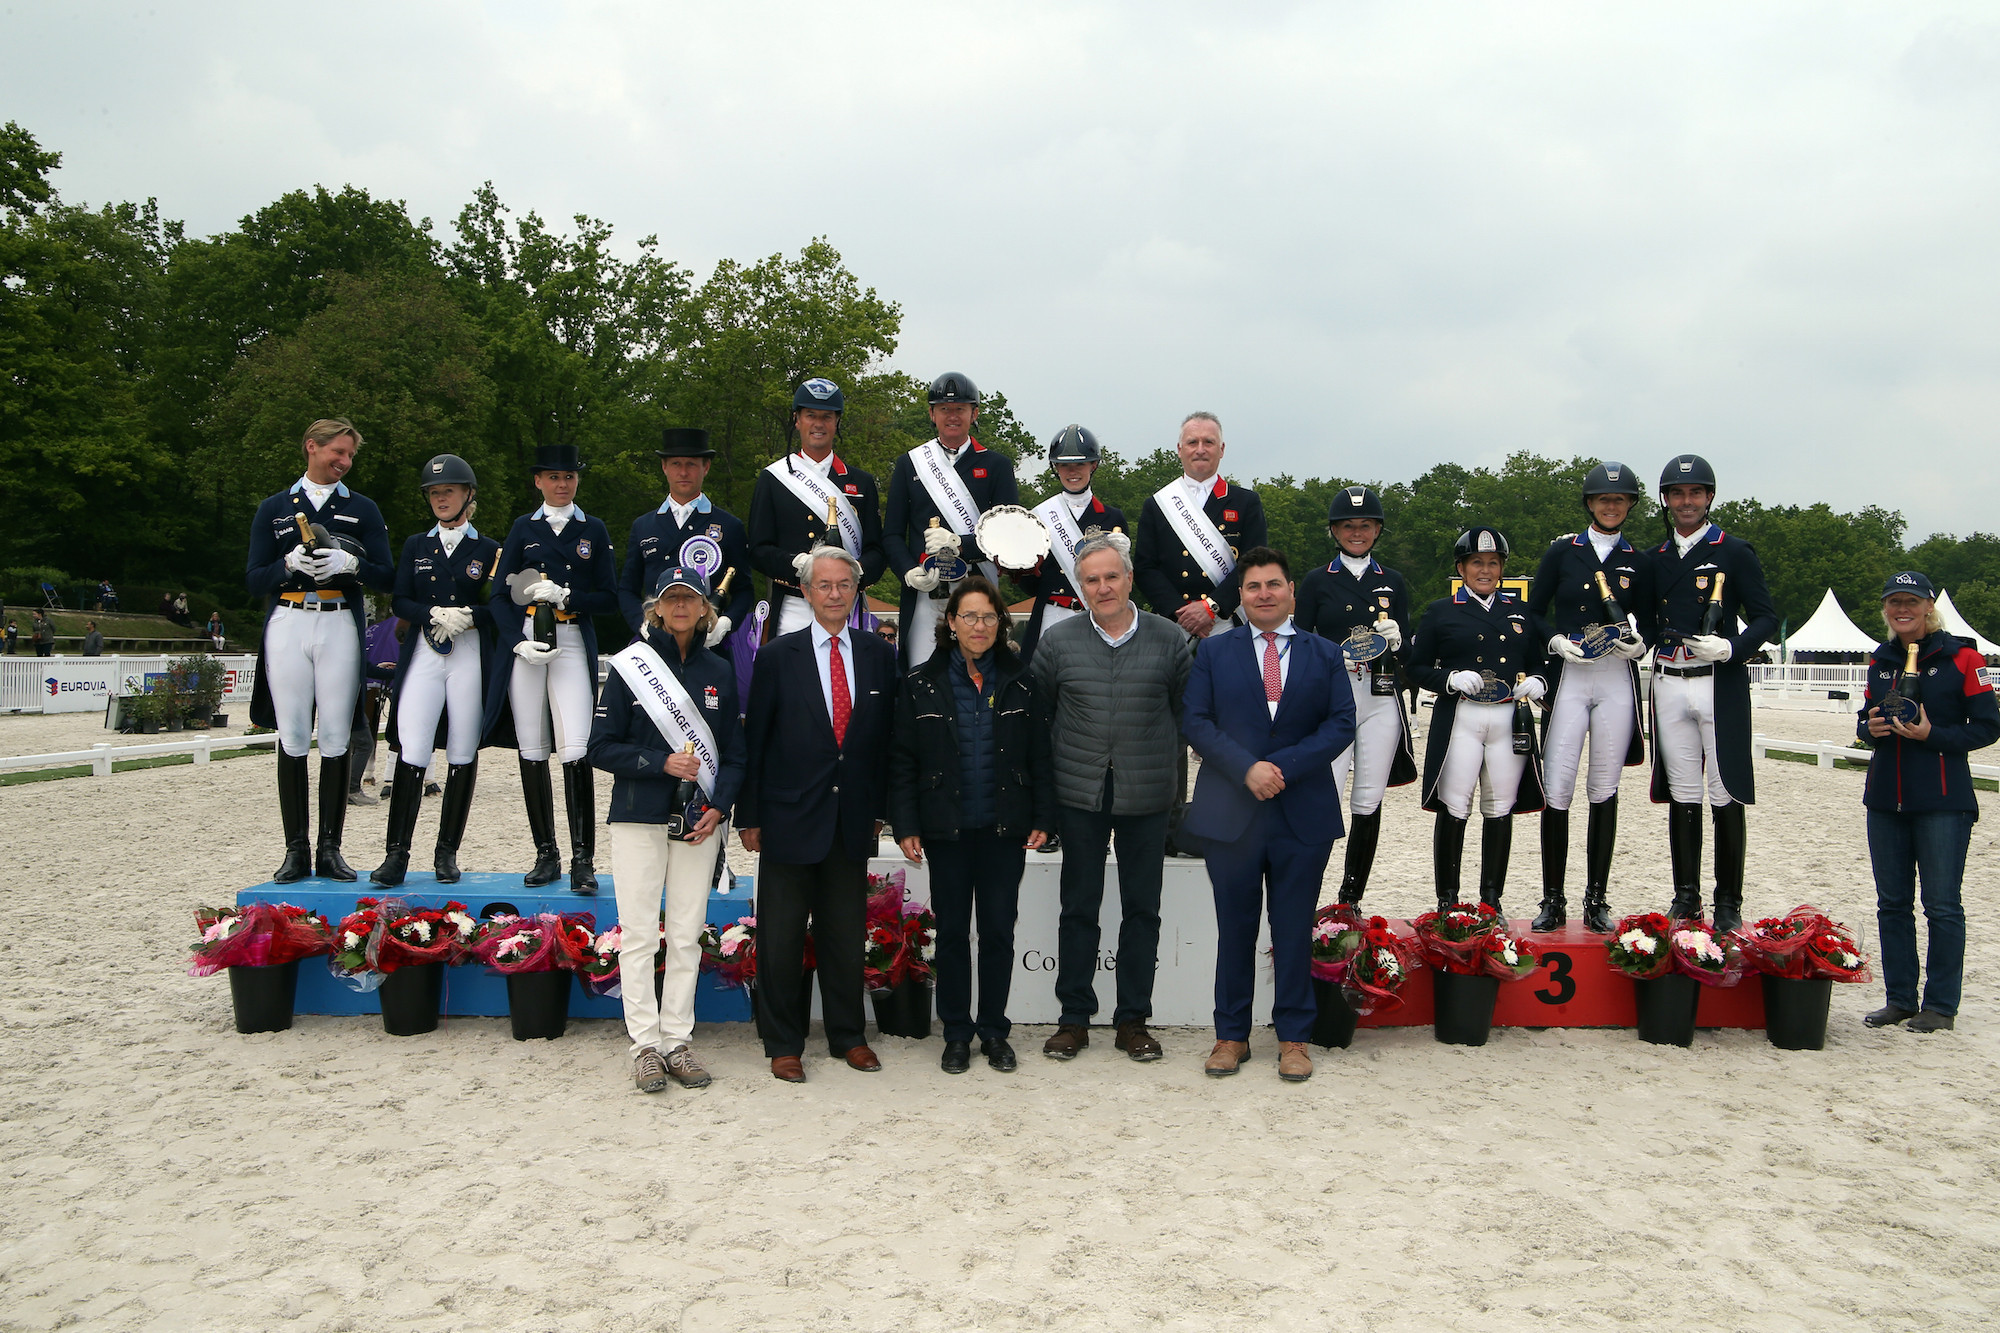 Britain triumph at FEI Dressage Nations Cup in France